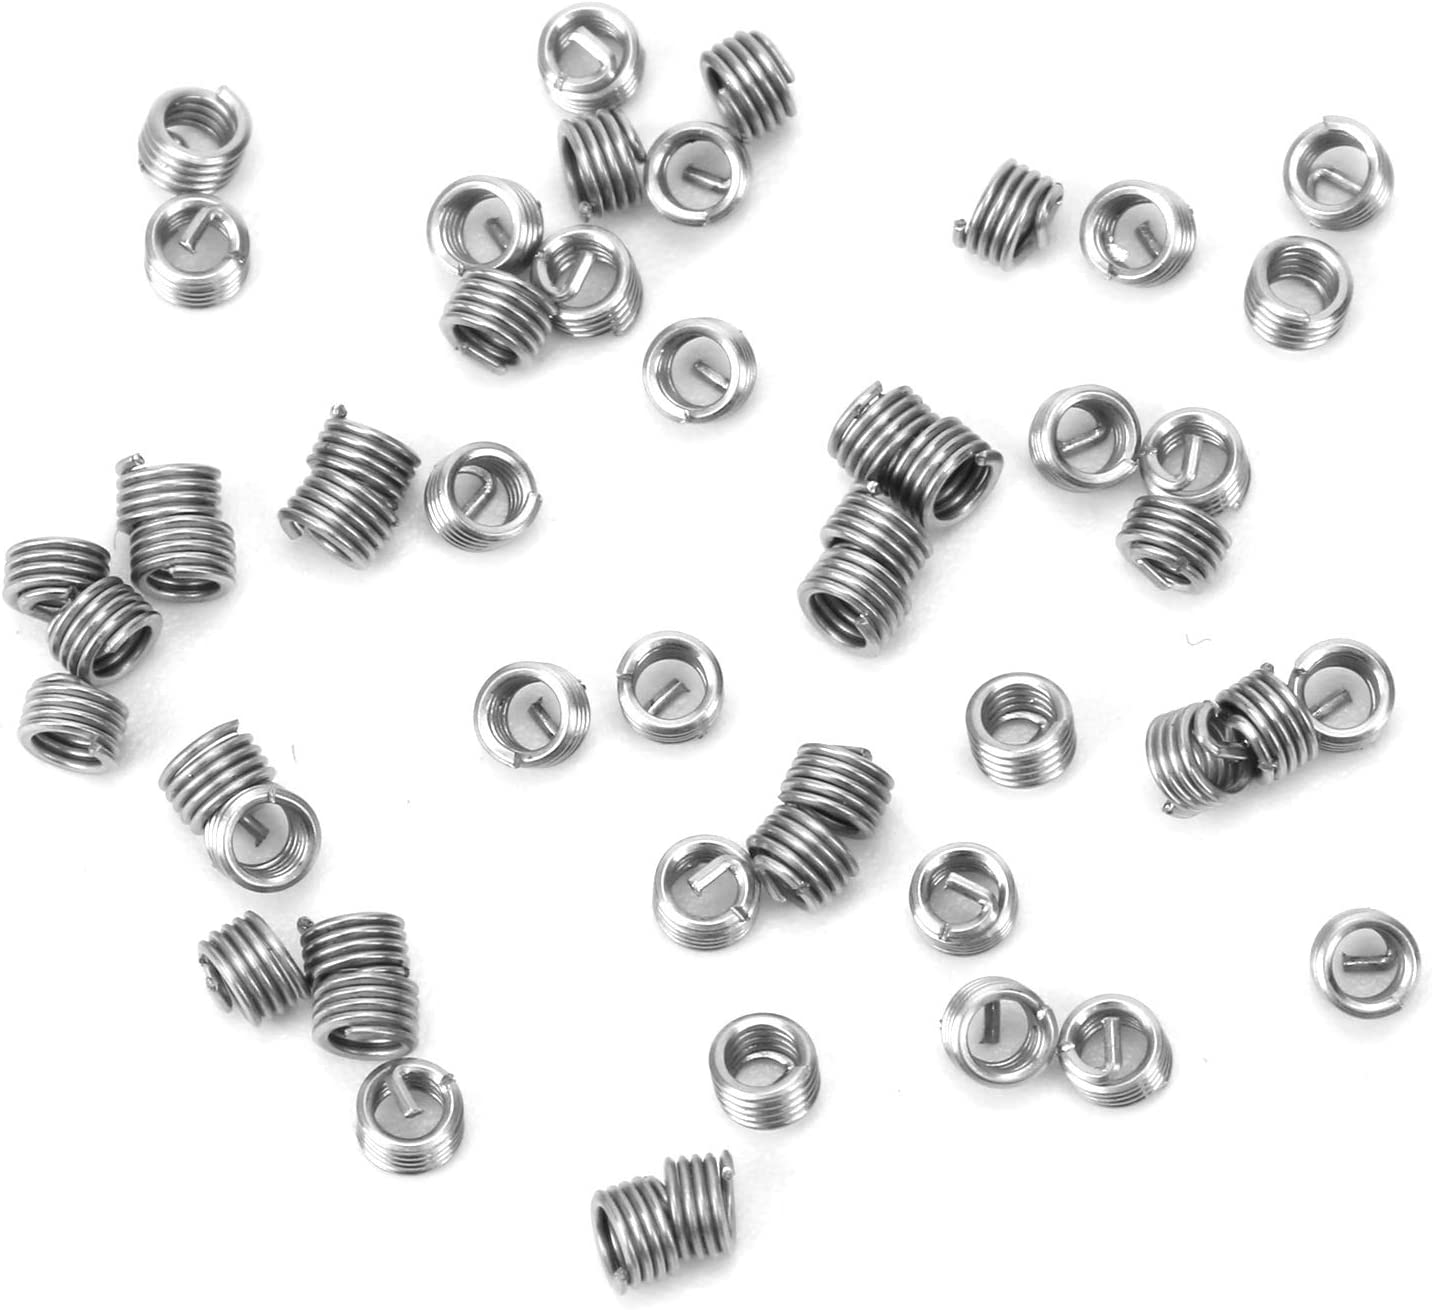 50Pcs Wire Thread Gorgeous Insert Coiled Threaded Free shipping on posting reviews Expa Bushing Nut Sleeve